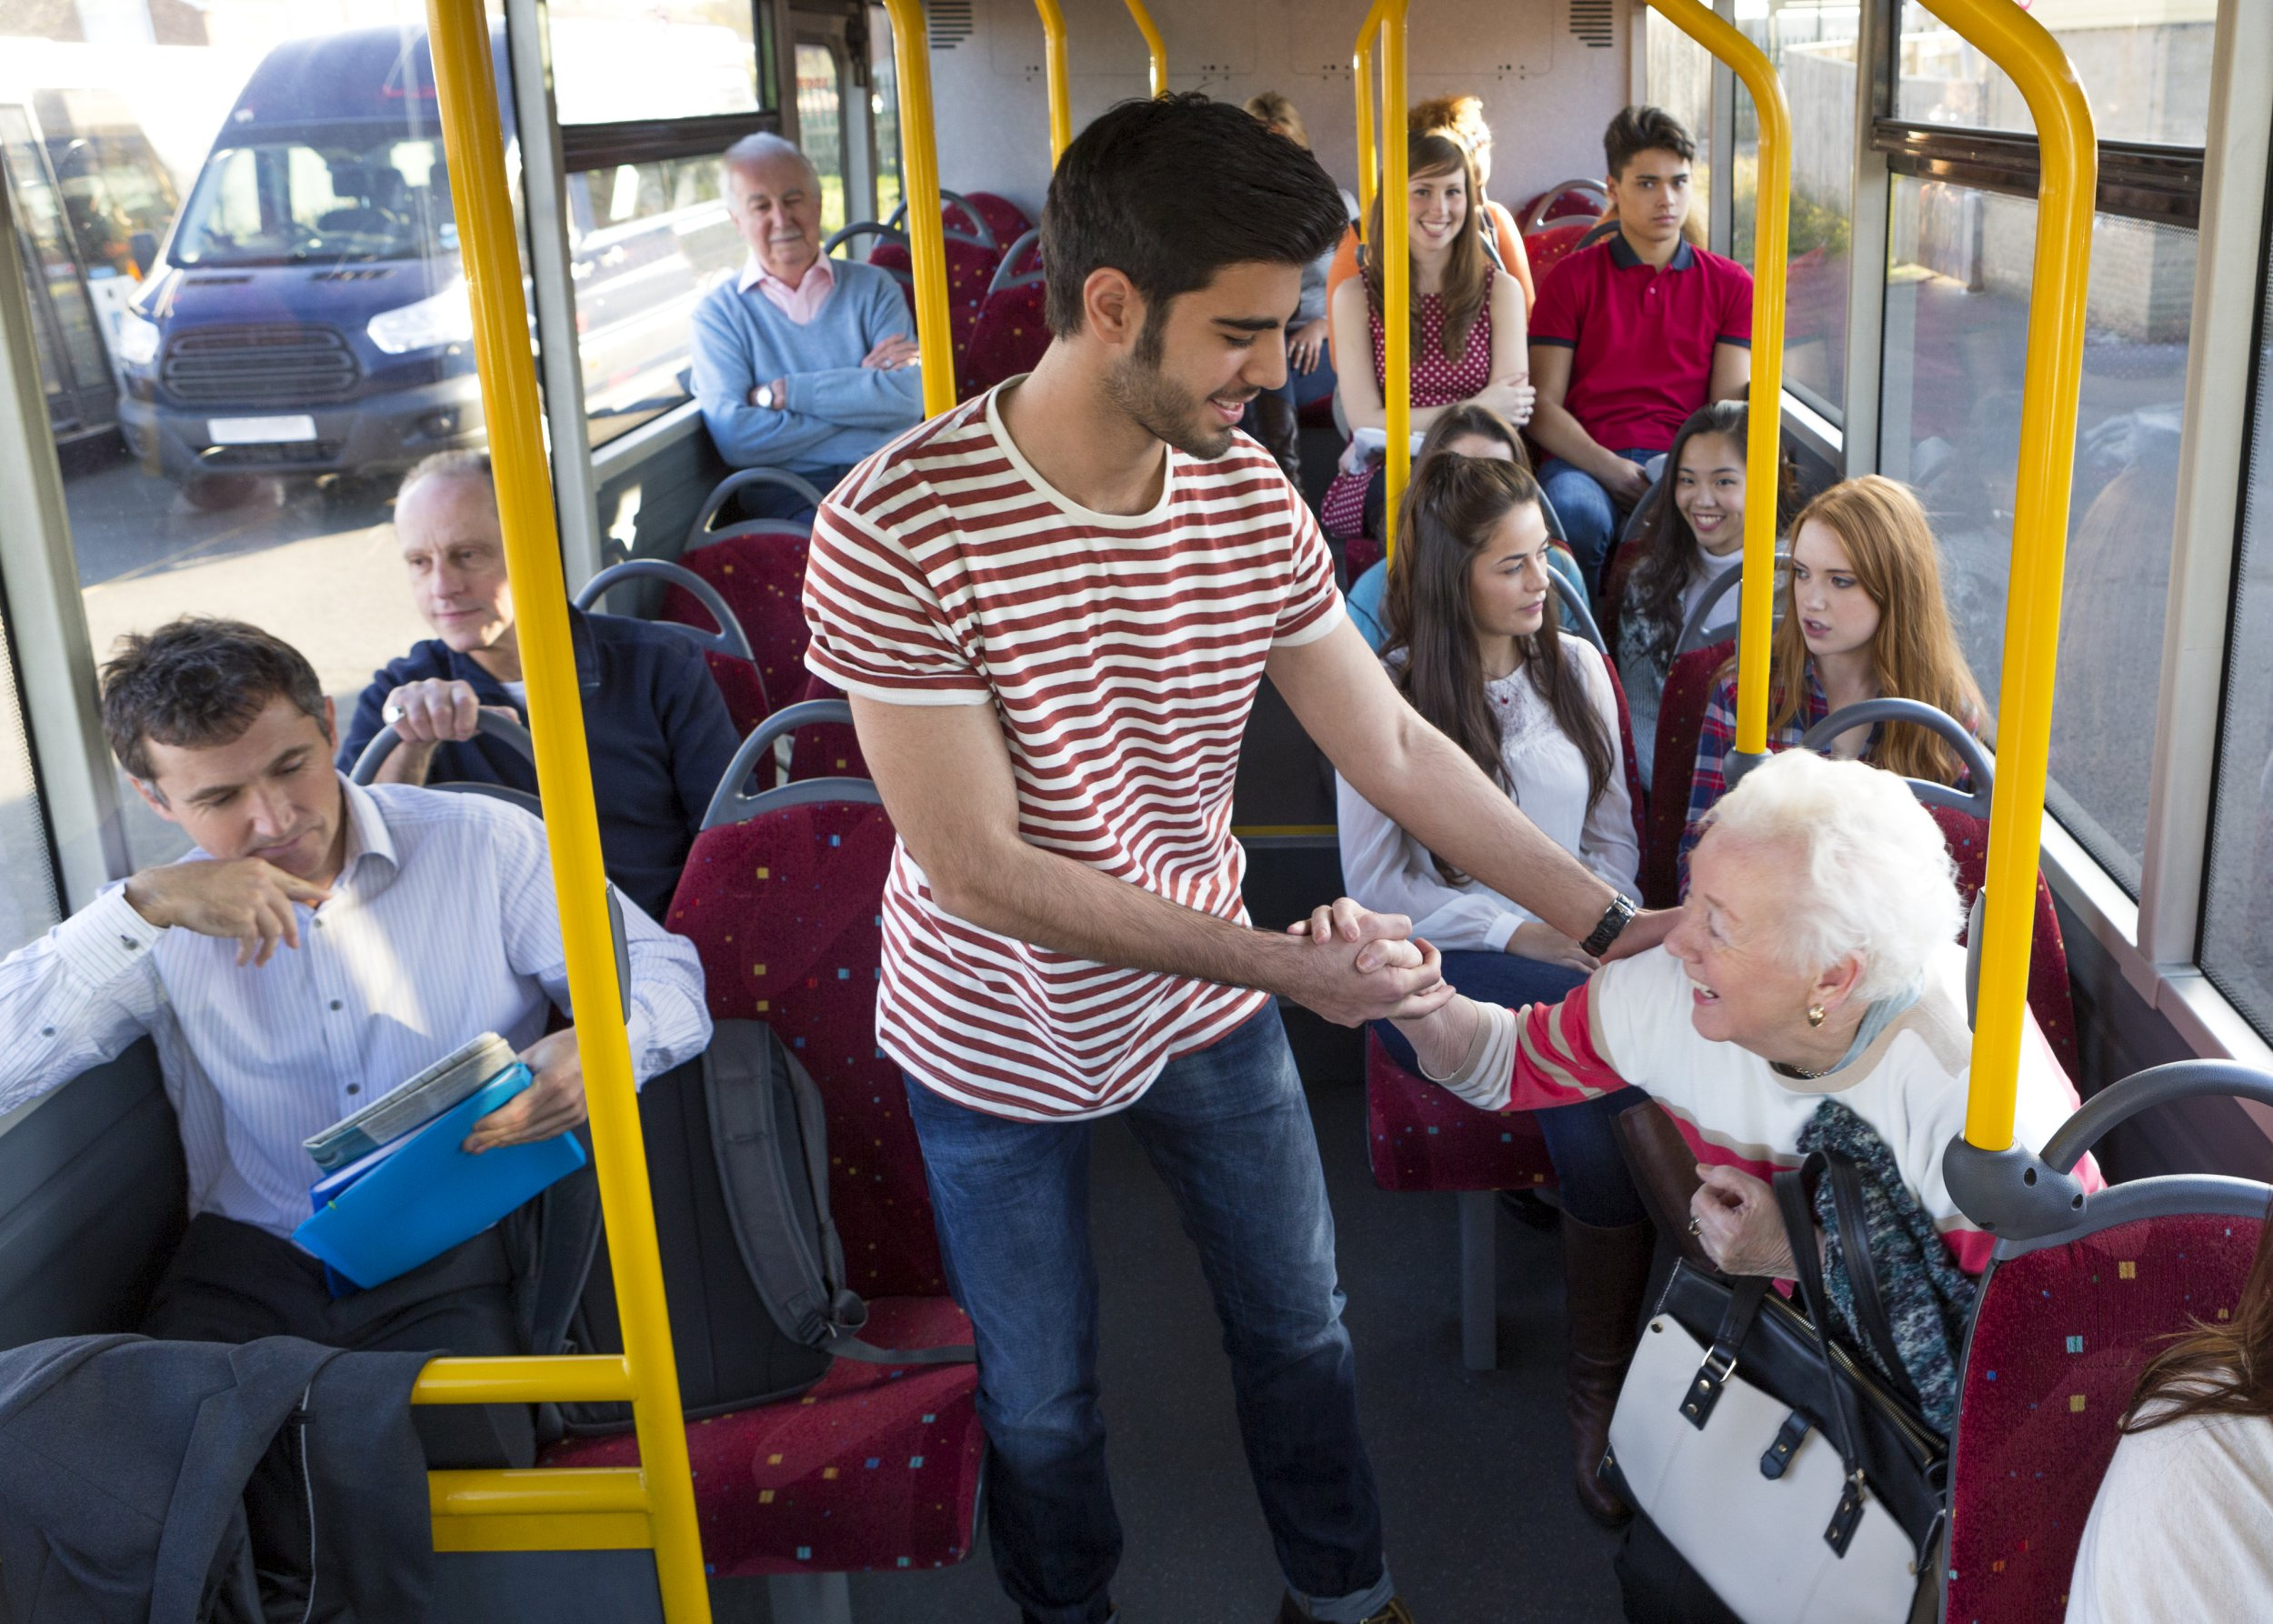 Why you should not offer elderly people a seat on public transport